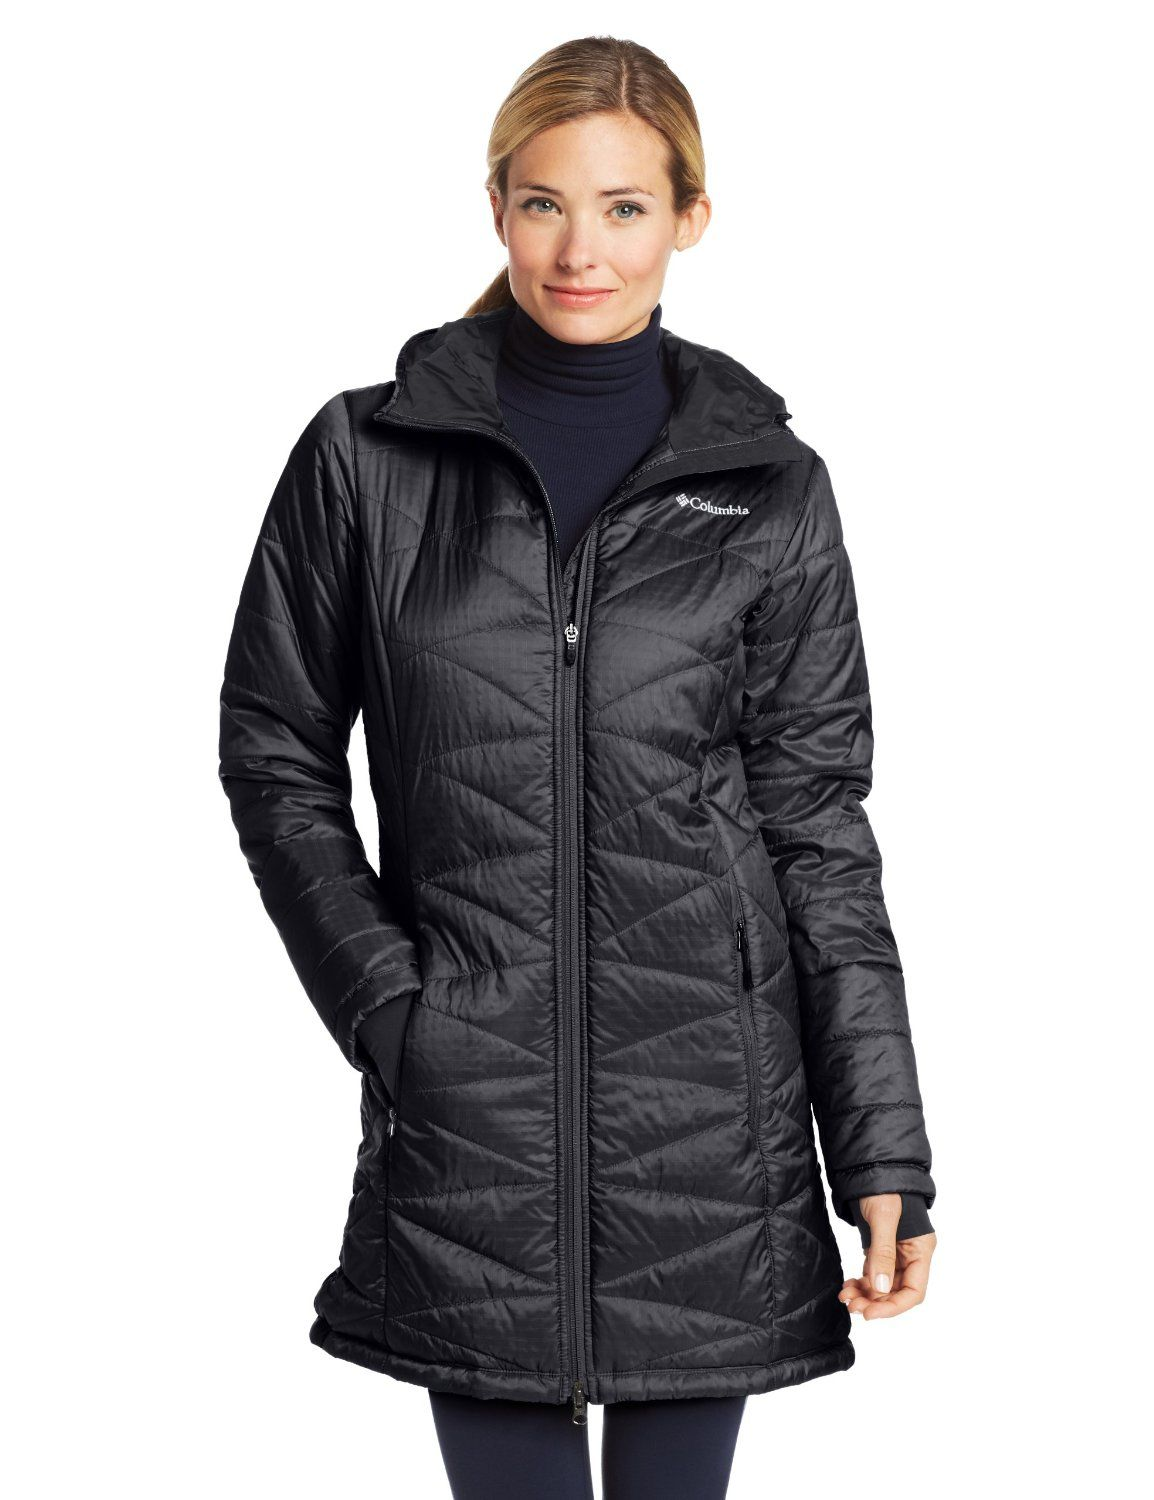 52deadf7d5d Columbia Women s Mighty Lite Hooded Jacket – Shop2online best woman s  fashion products designed to provide